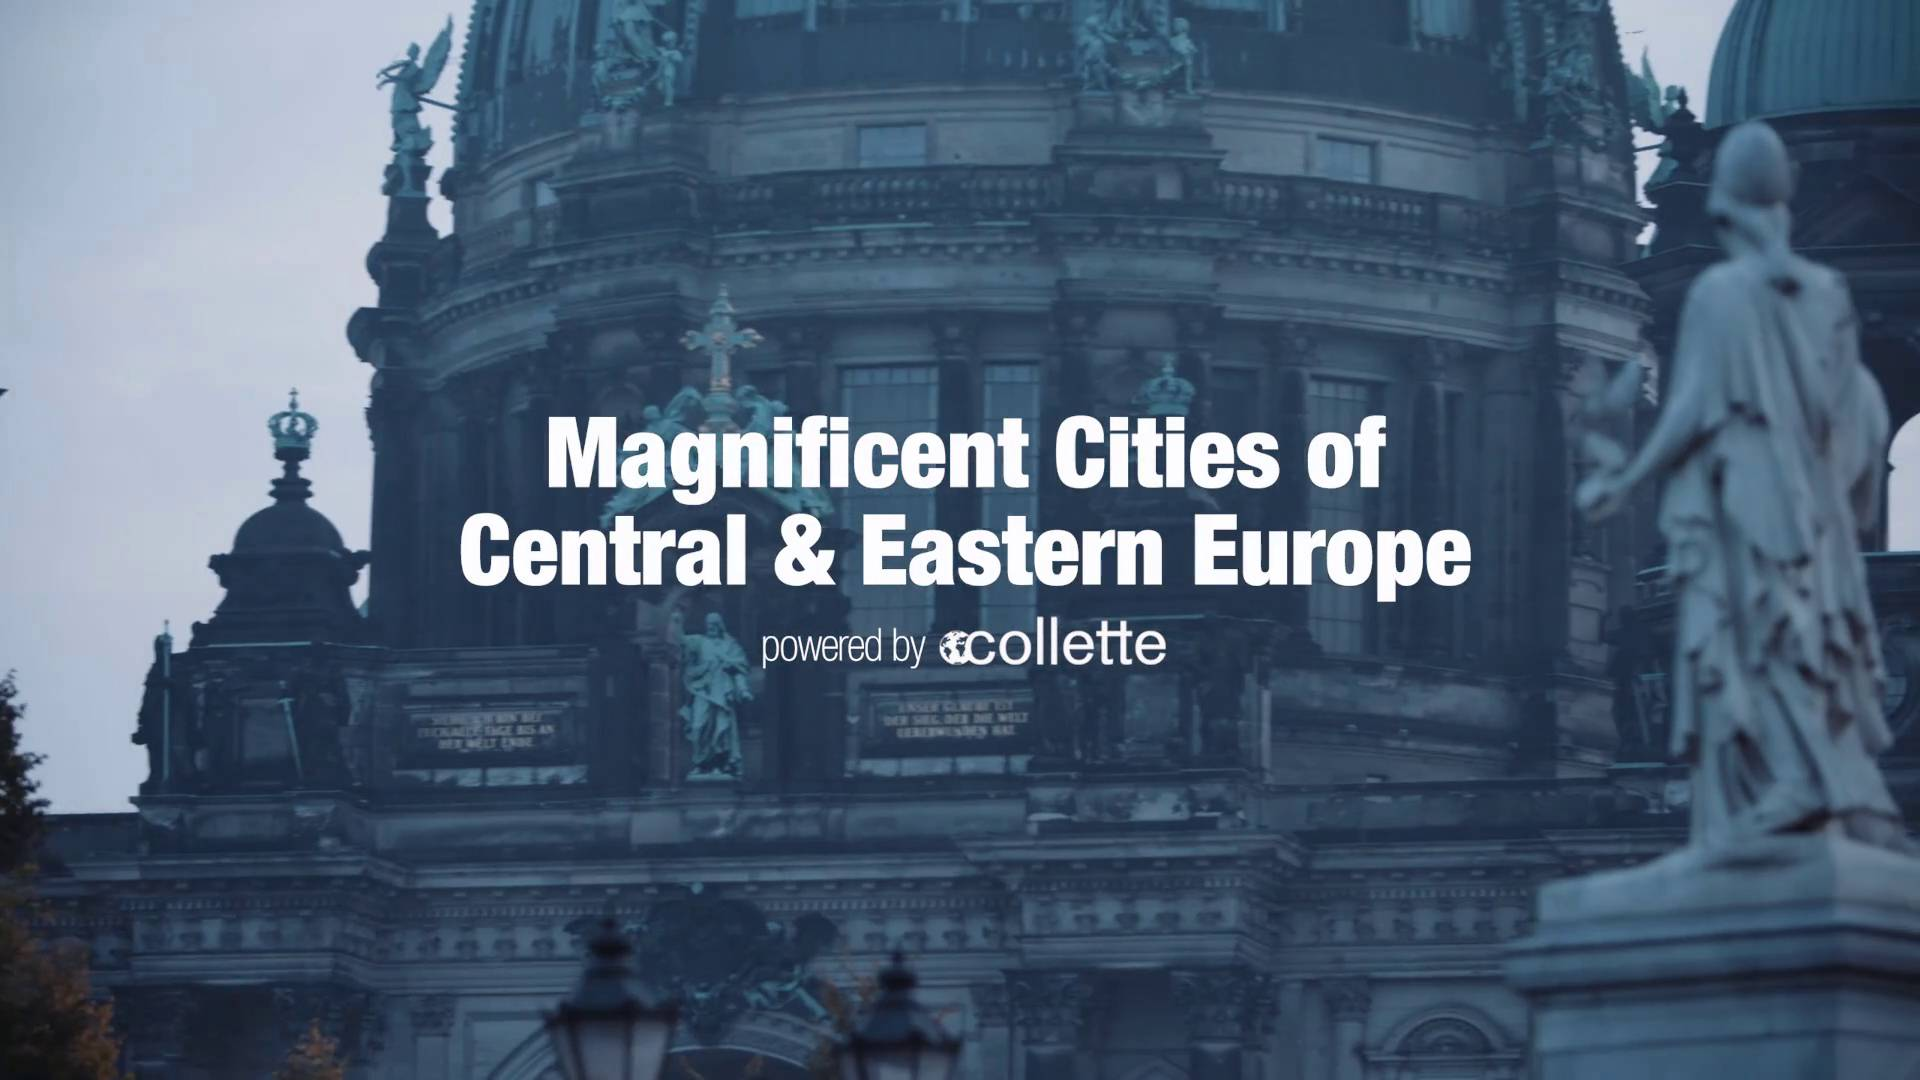 Magnificent Cities of Central & Eastern Europe | Collette